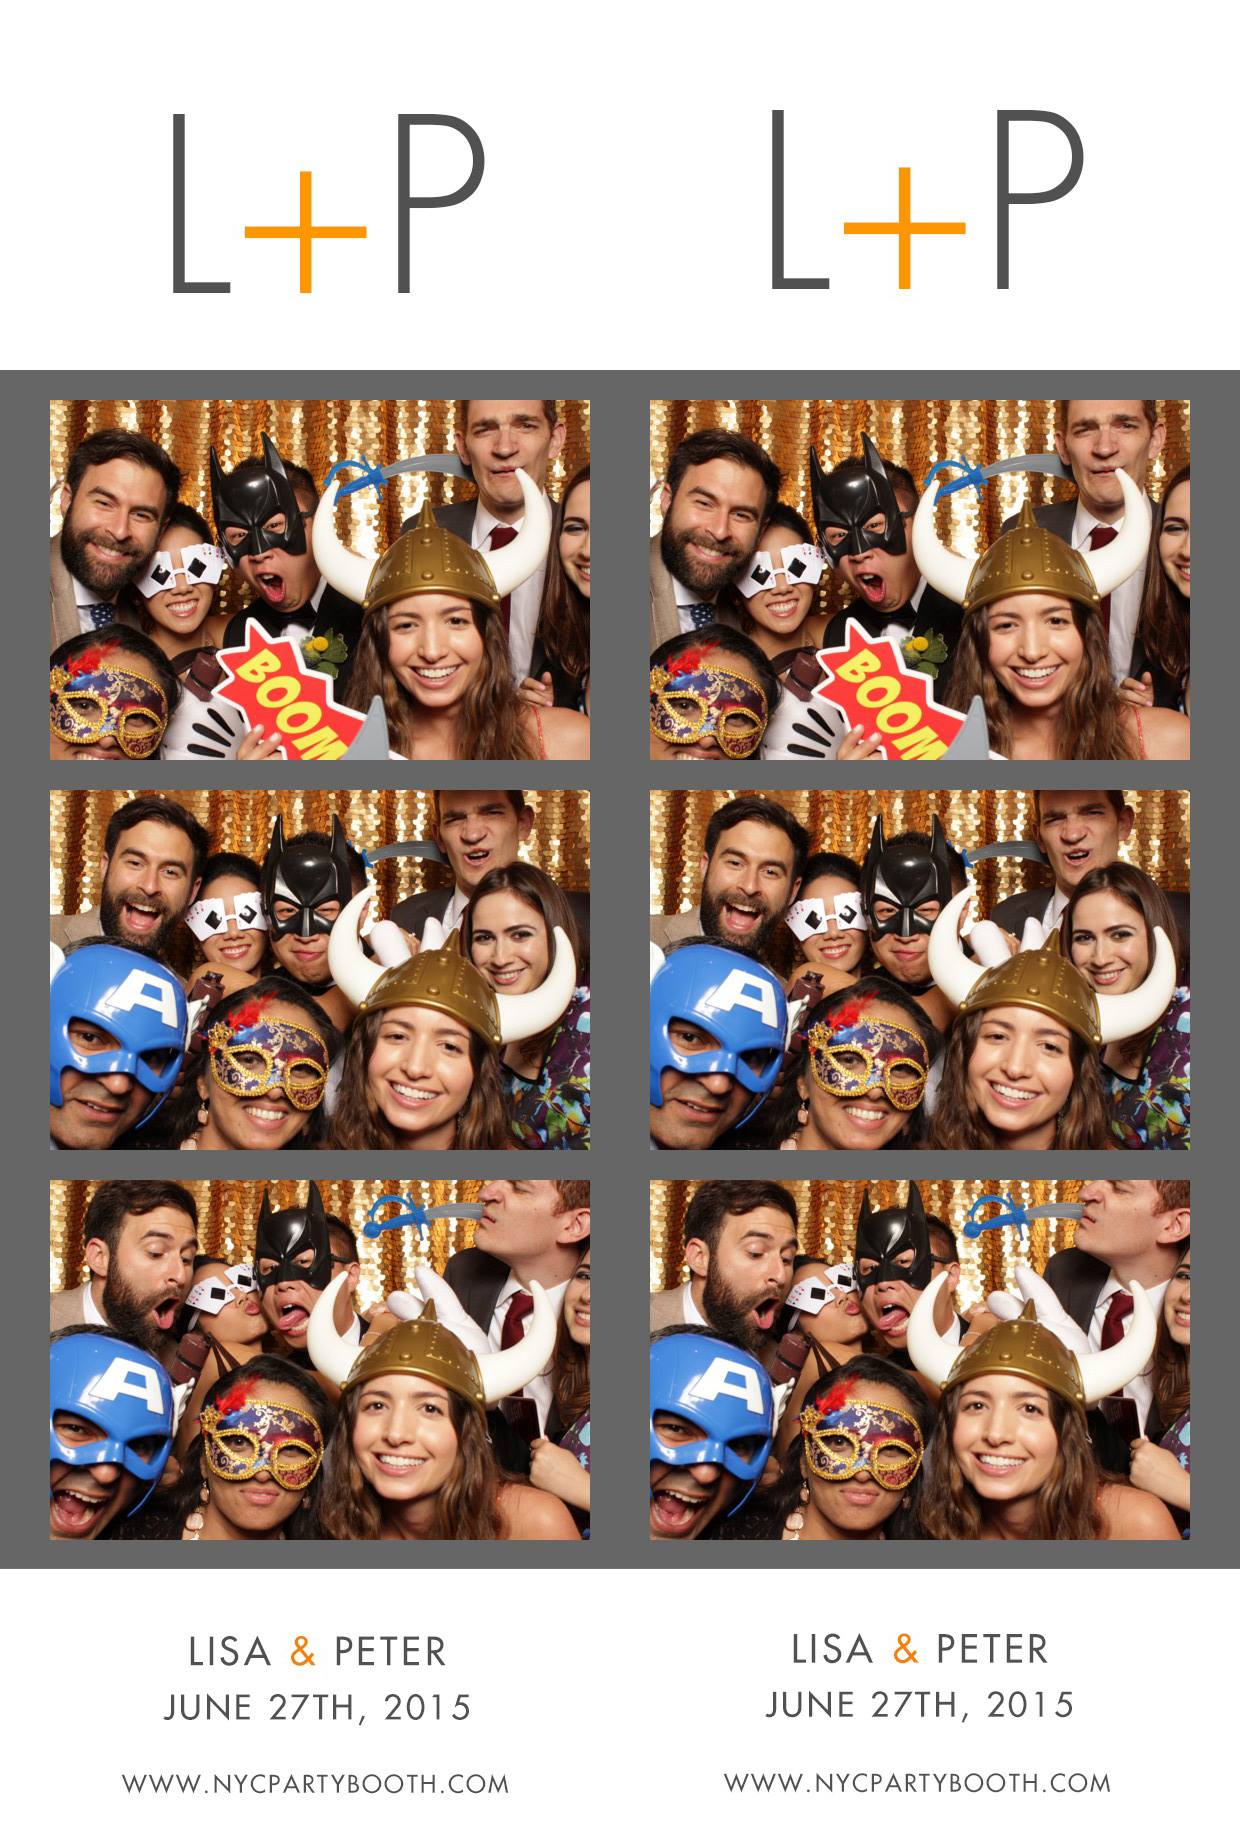 Wedding Lisa Peter Nyc Party Booth Photo Booth